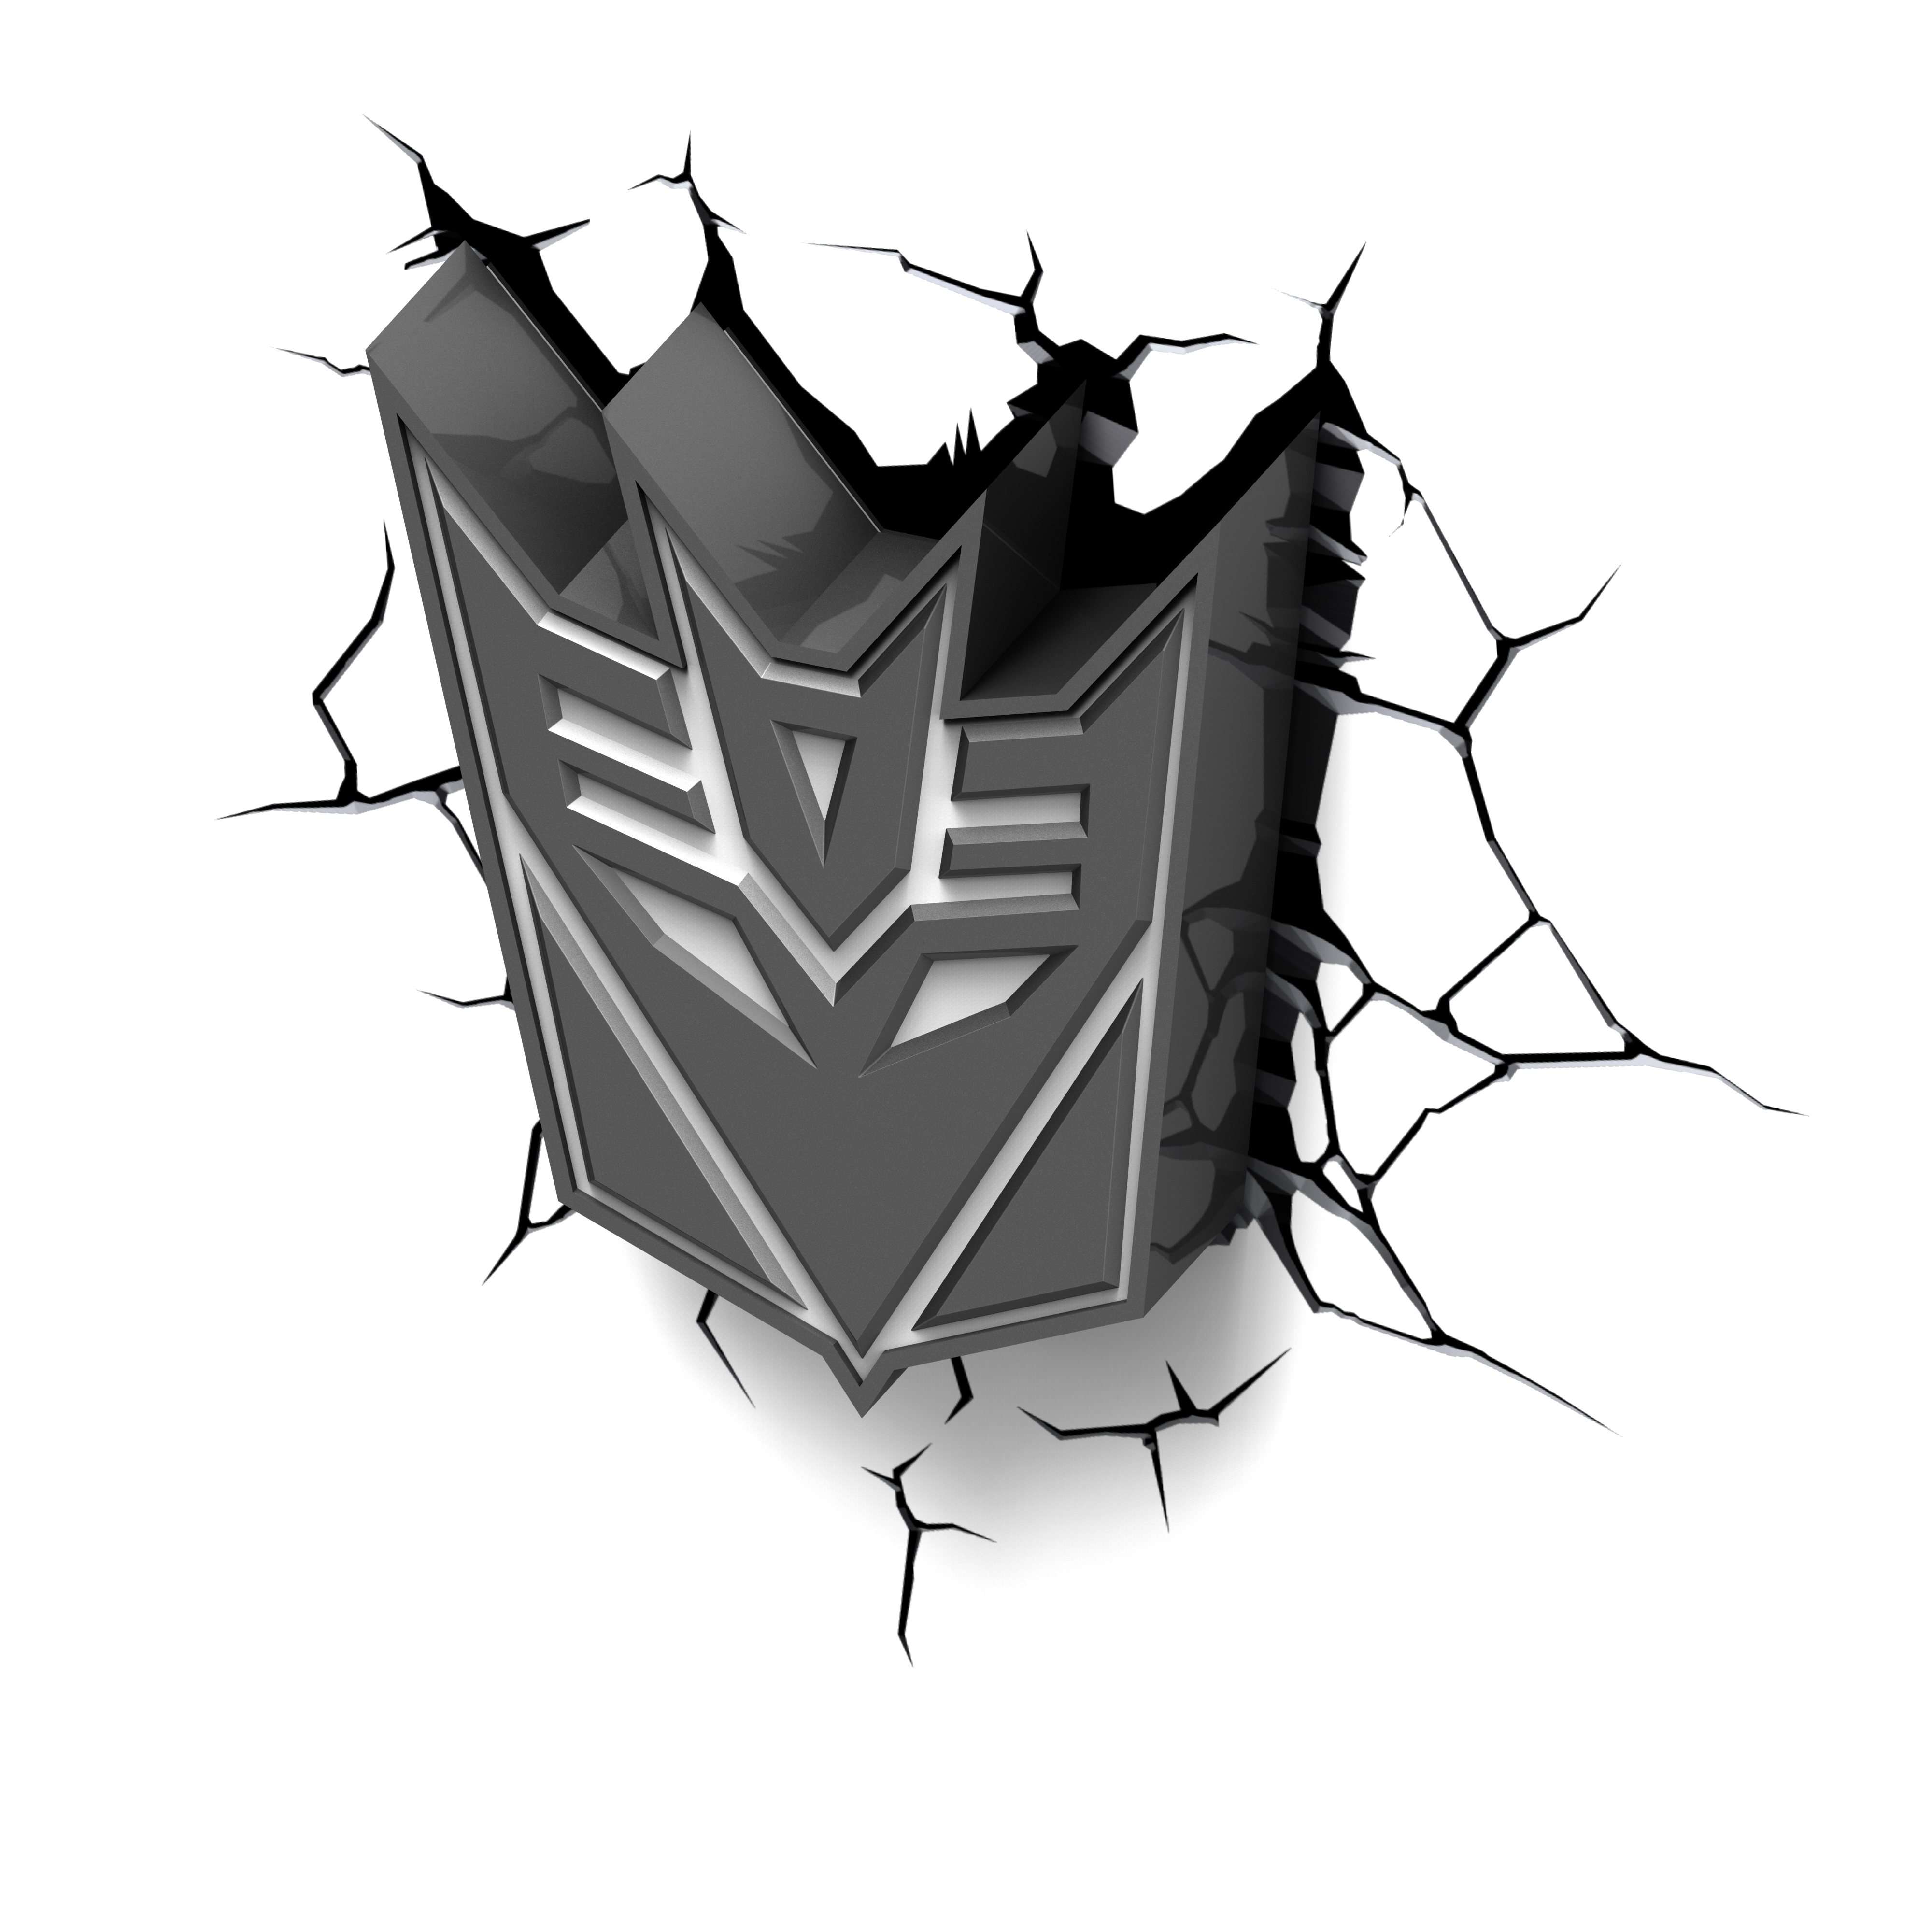 Decepticon_Packaging_02